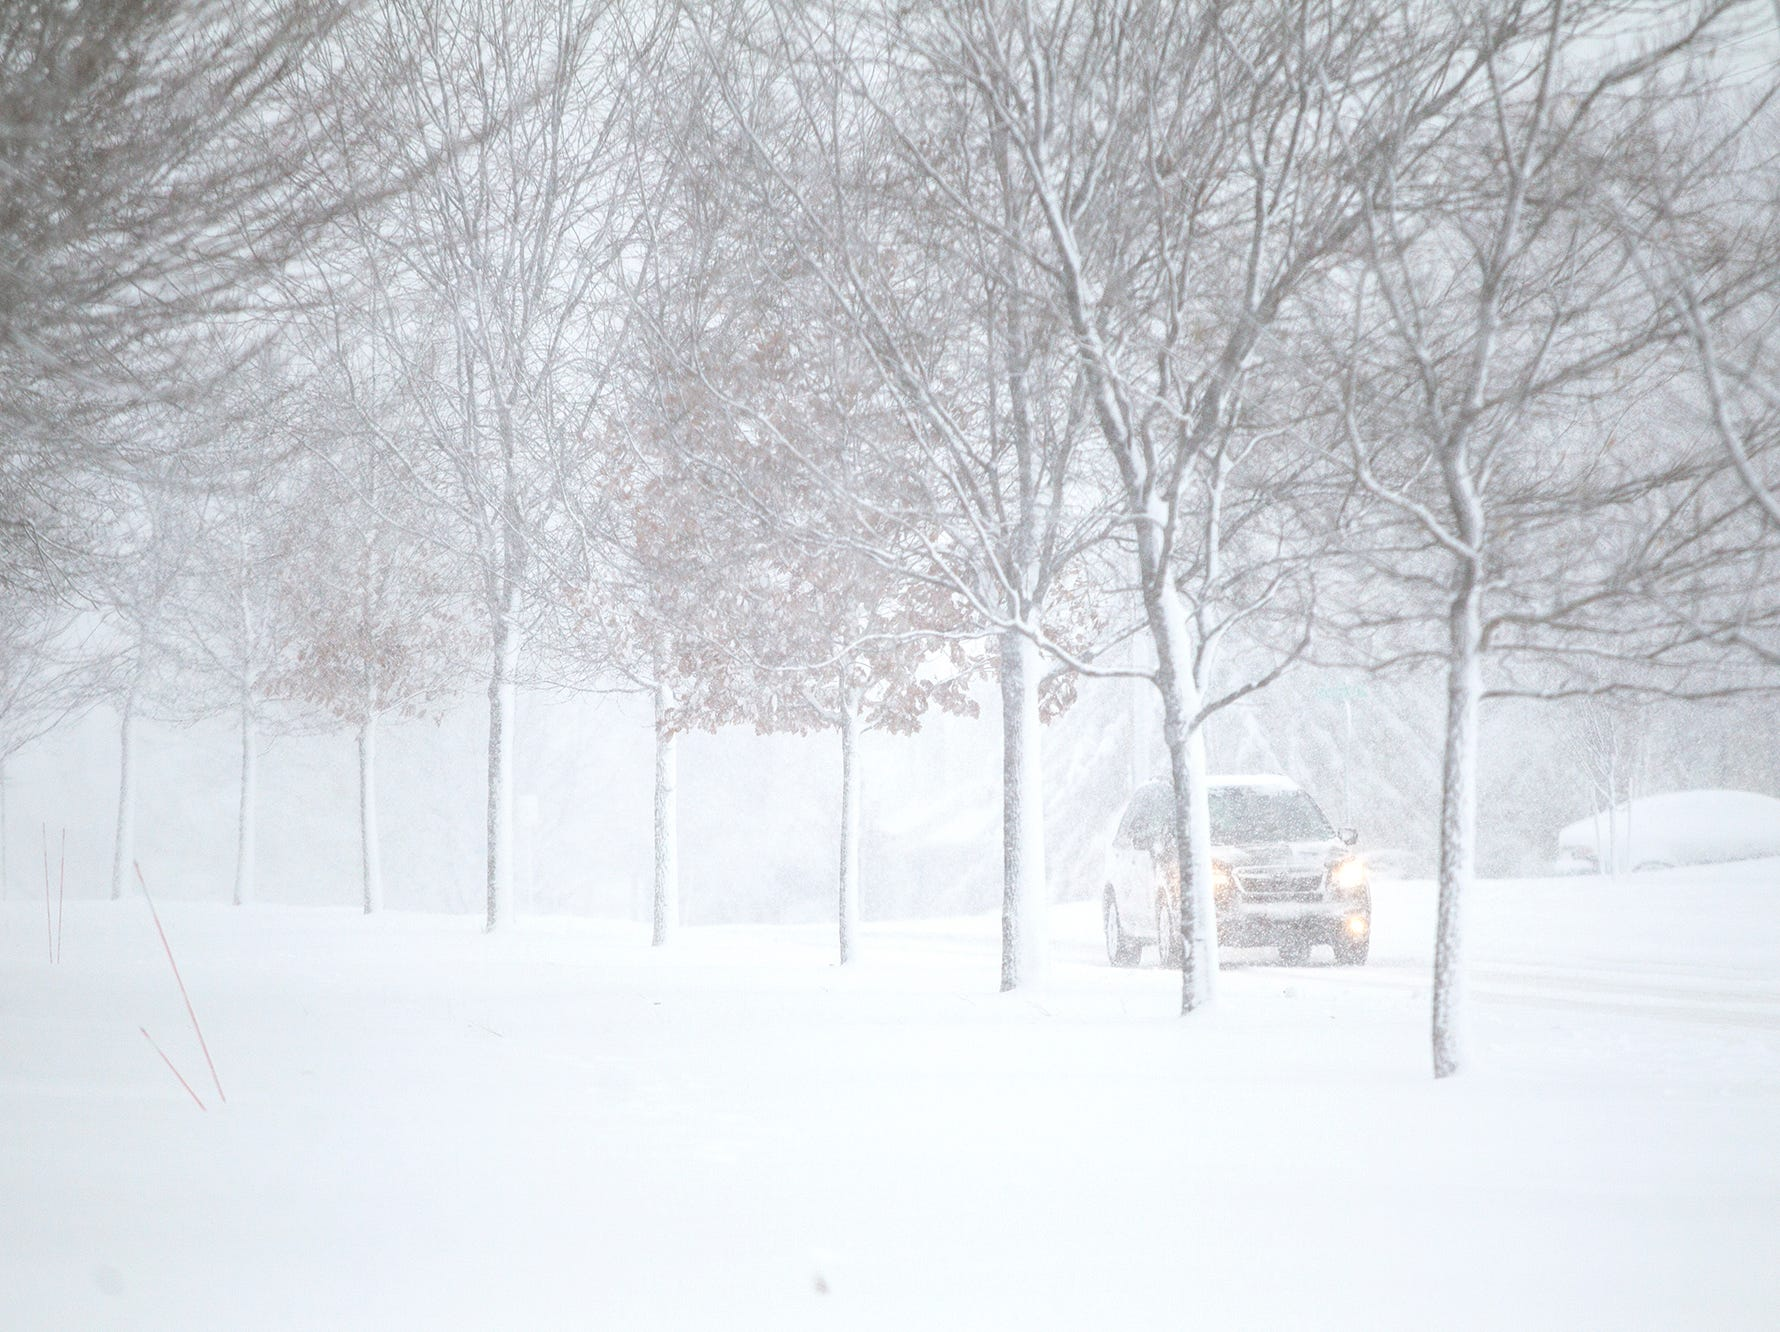 A car drives along Court Street as snow falls during a storm on Sunday, Nov. 25, 2018, on the east side of Iowa City. AccuWeather anticipated Iowa City to have a total of 6-10 inches of snow.